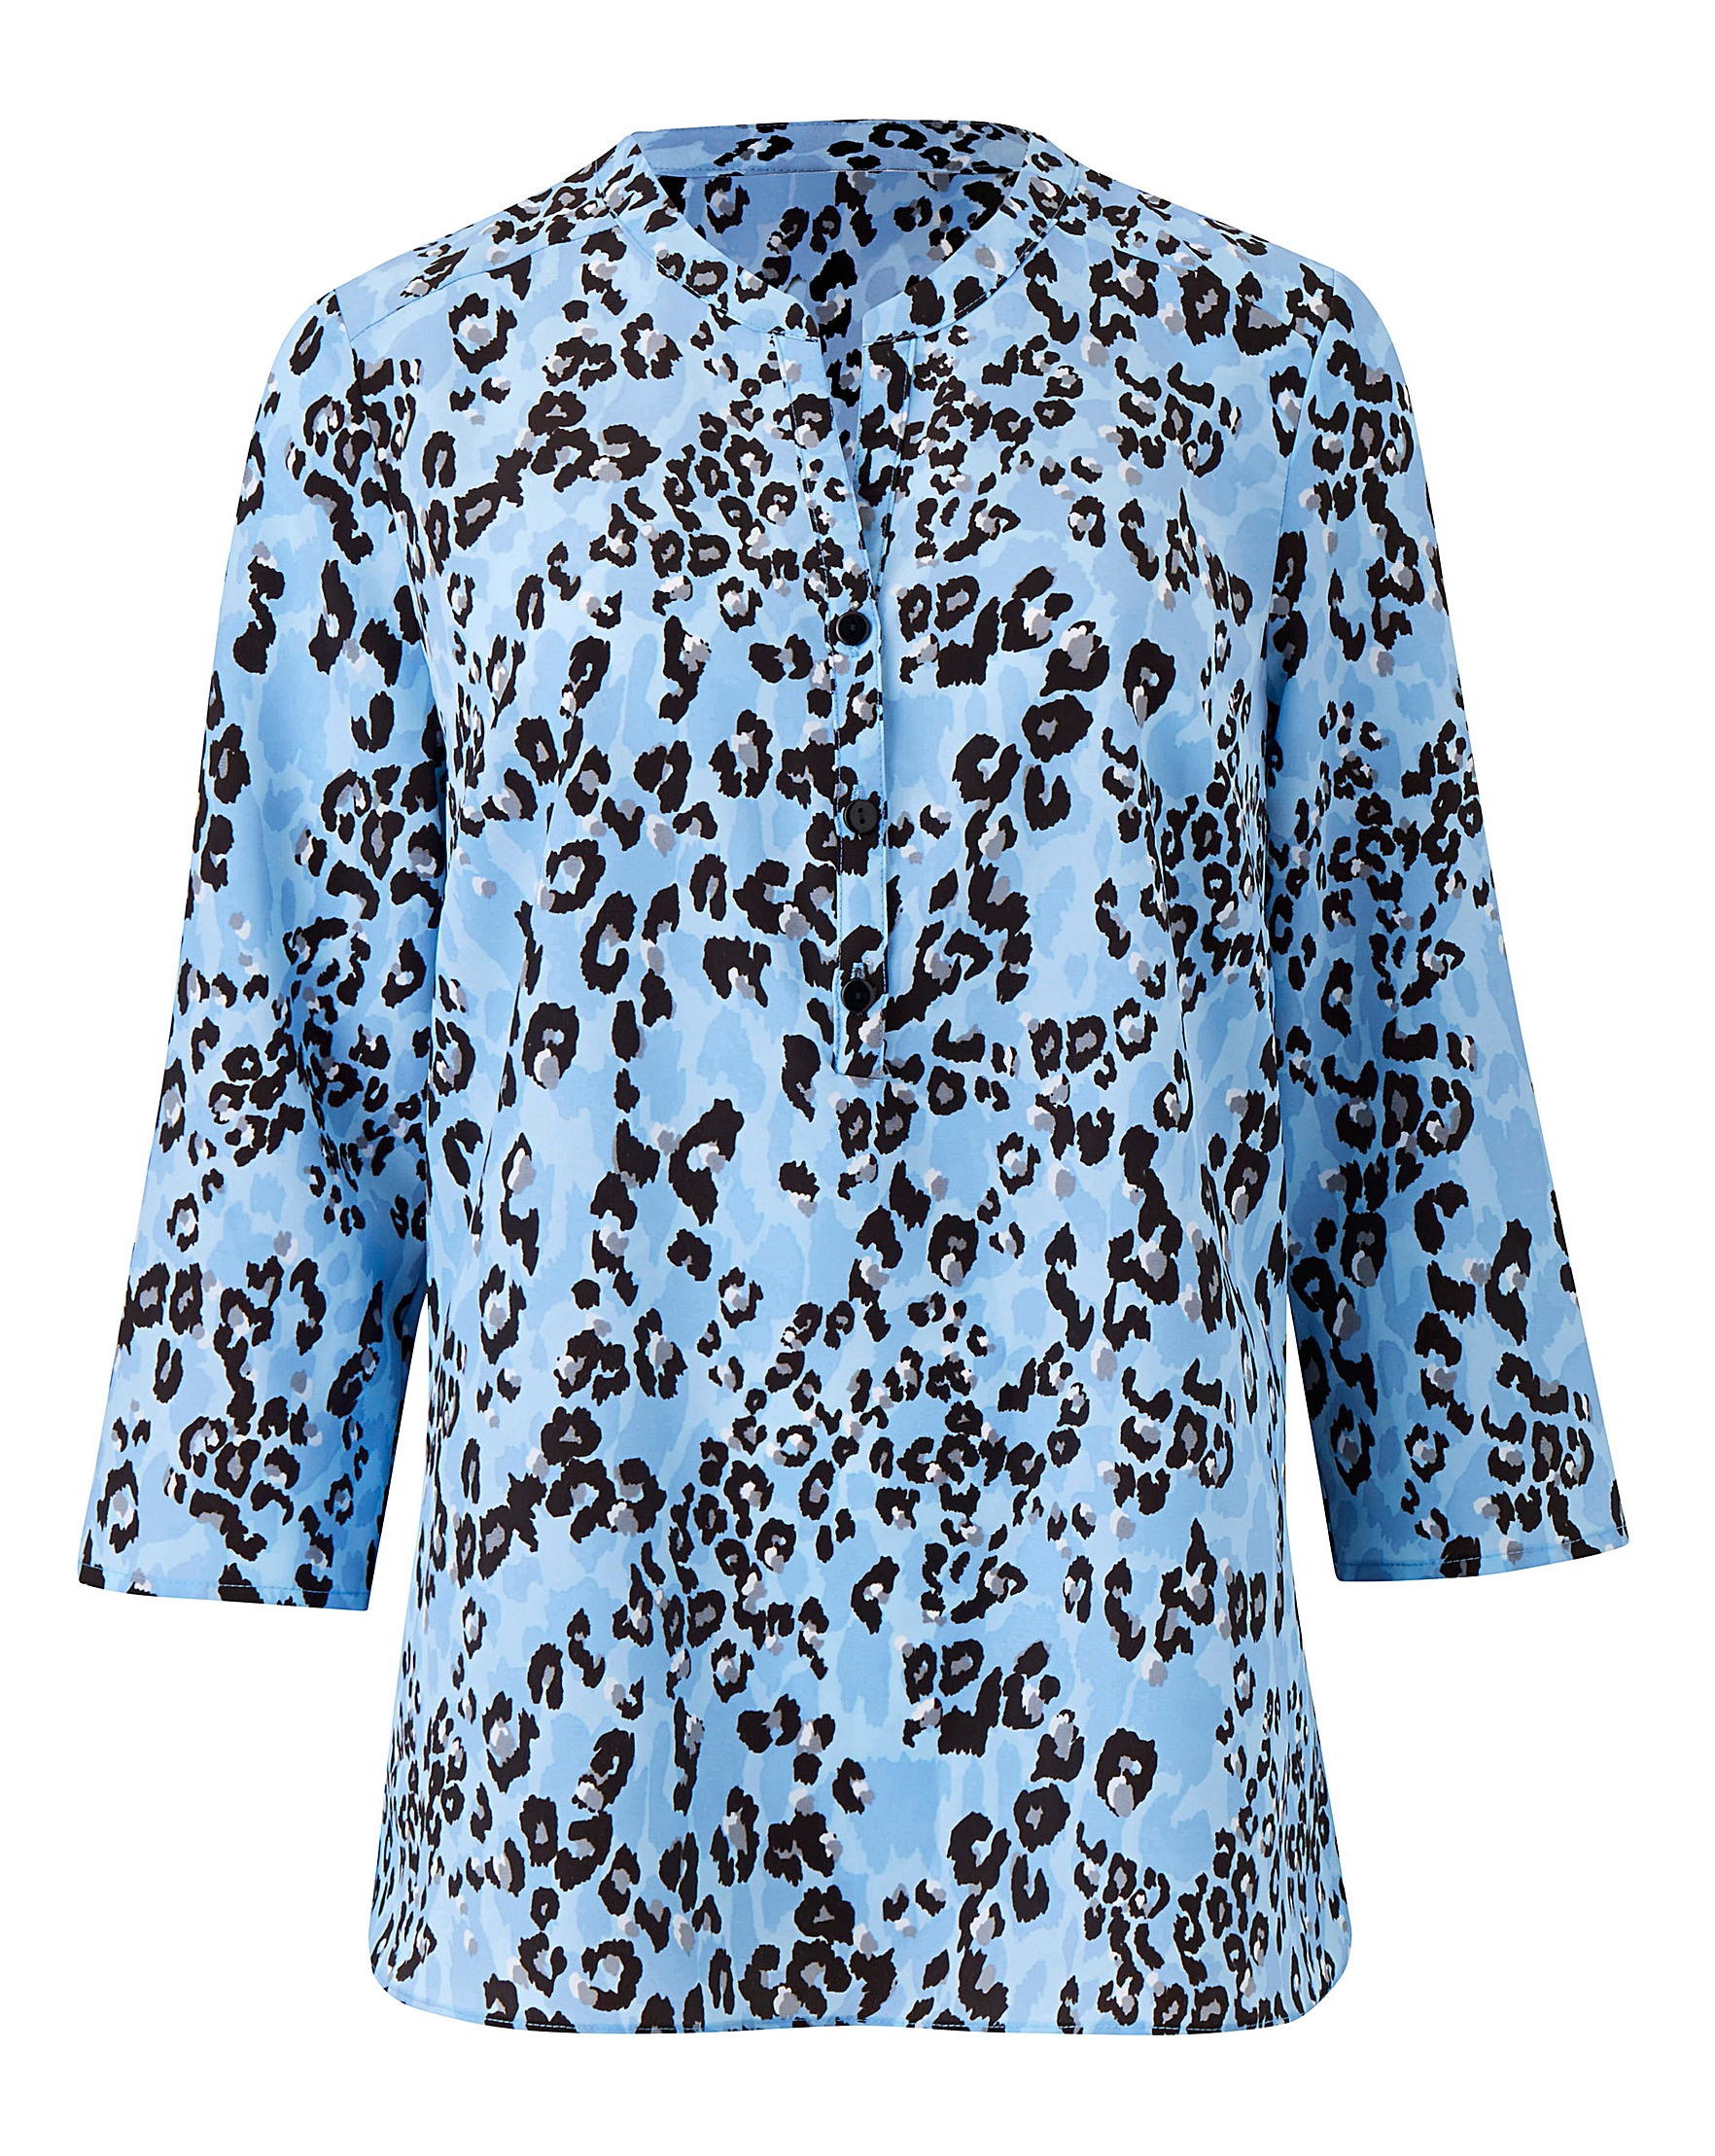 4456e51db9fbe3 Slimma Animal Print Blouse   Oxendales